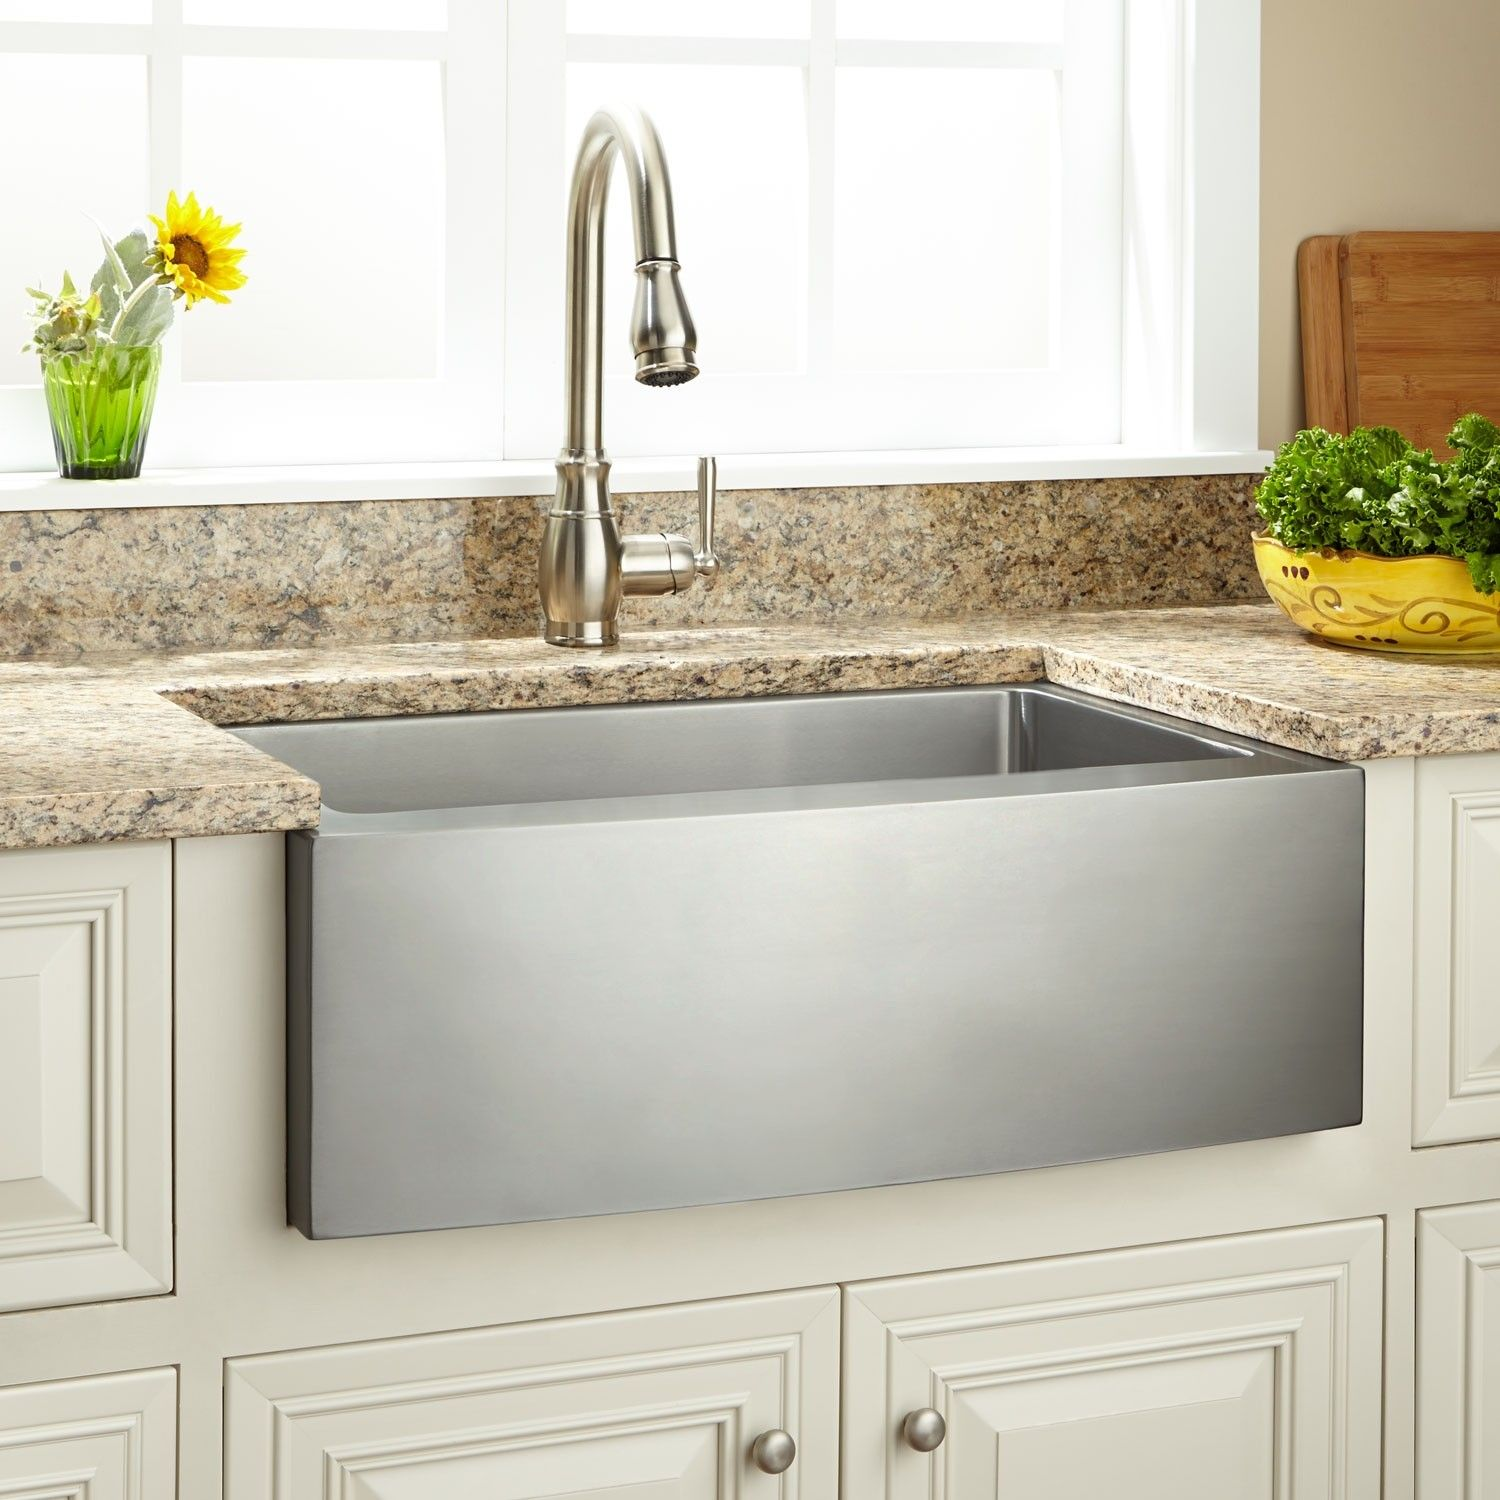 27 Optimum Stainless Steel Farmhouse Sink Curved Front